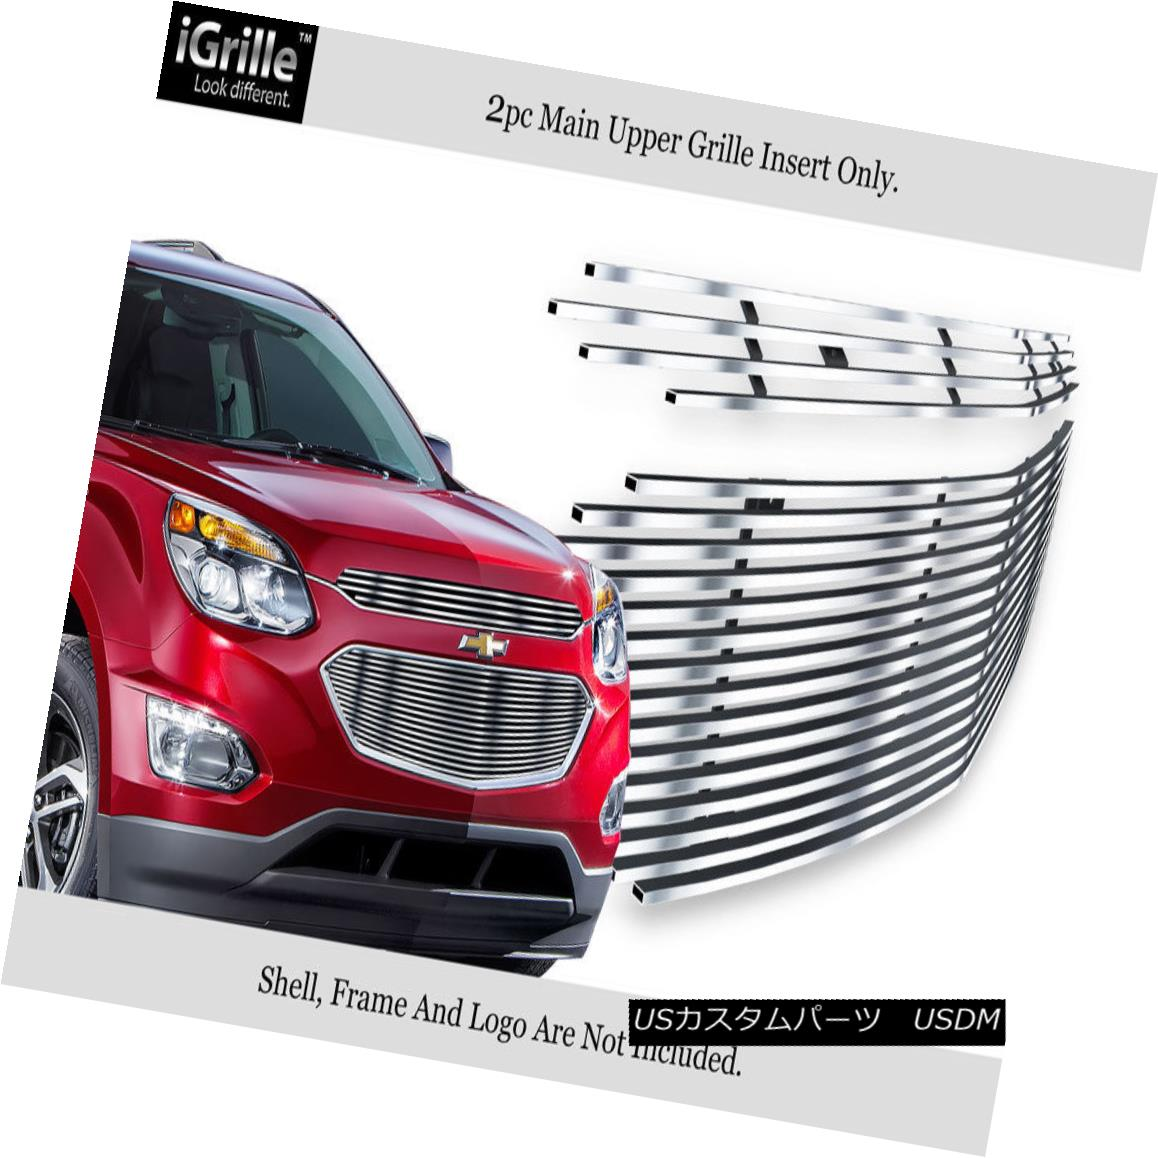 グリル Fits 2016-2017 Chevy Equinox Stainless Steel Billet Main Upper Grille 2016-2017 Chevy Equinox Stainless Steel Billetメインアッパーグリルに適合